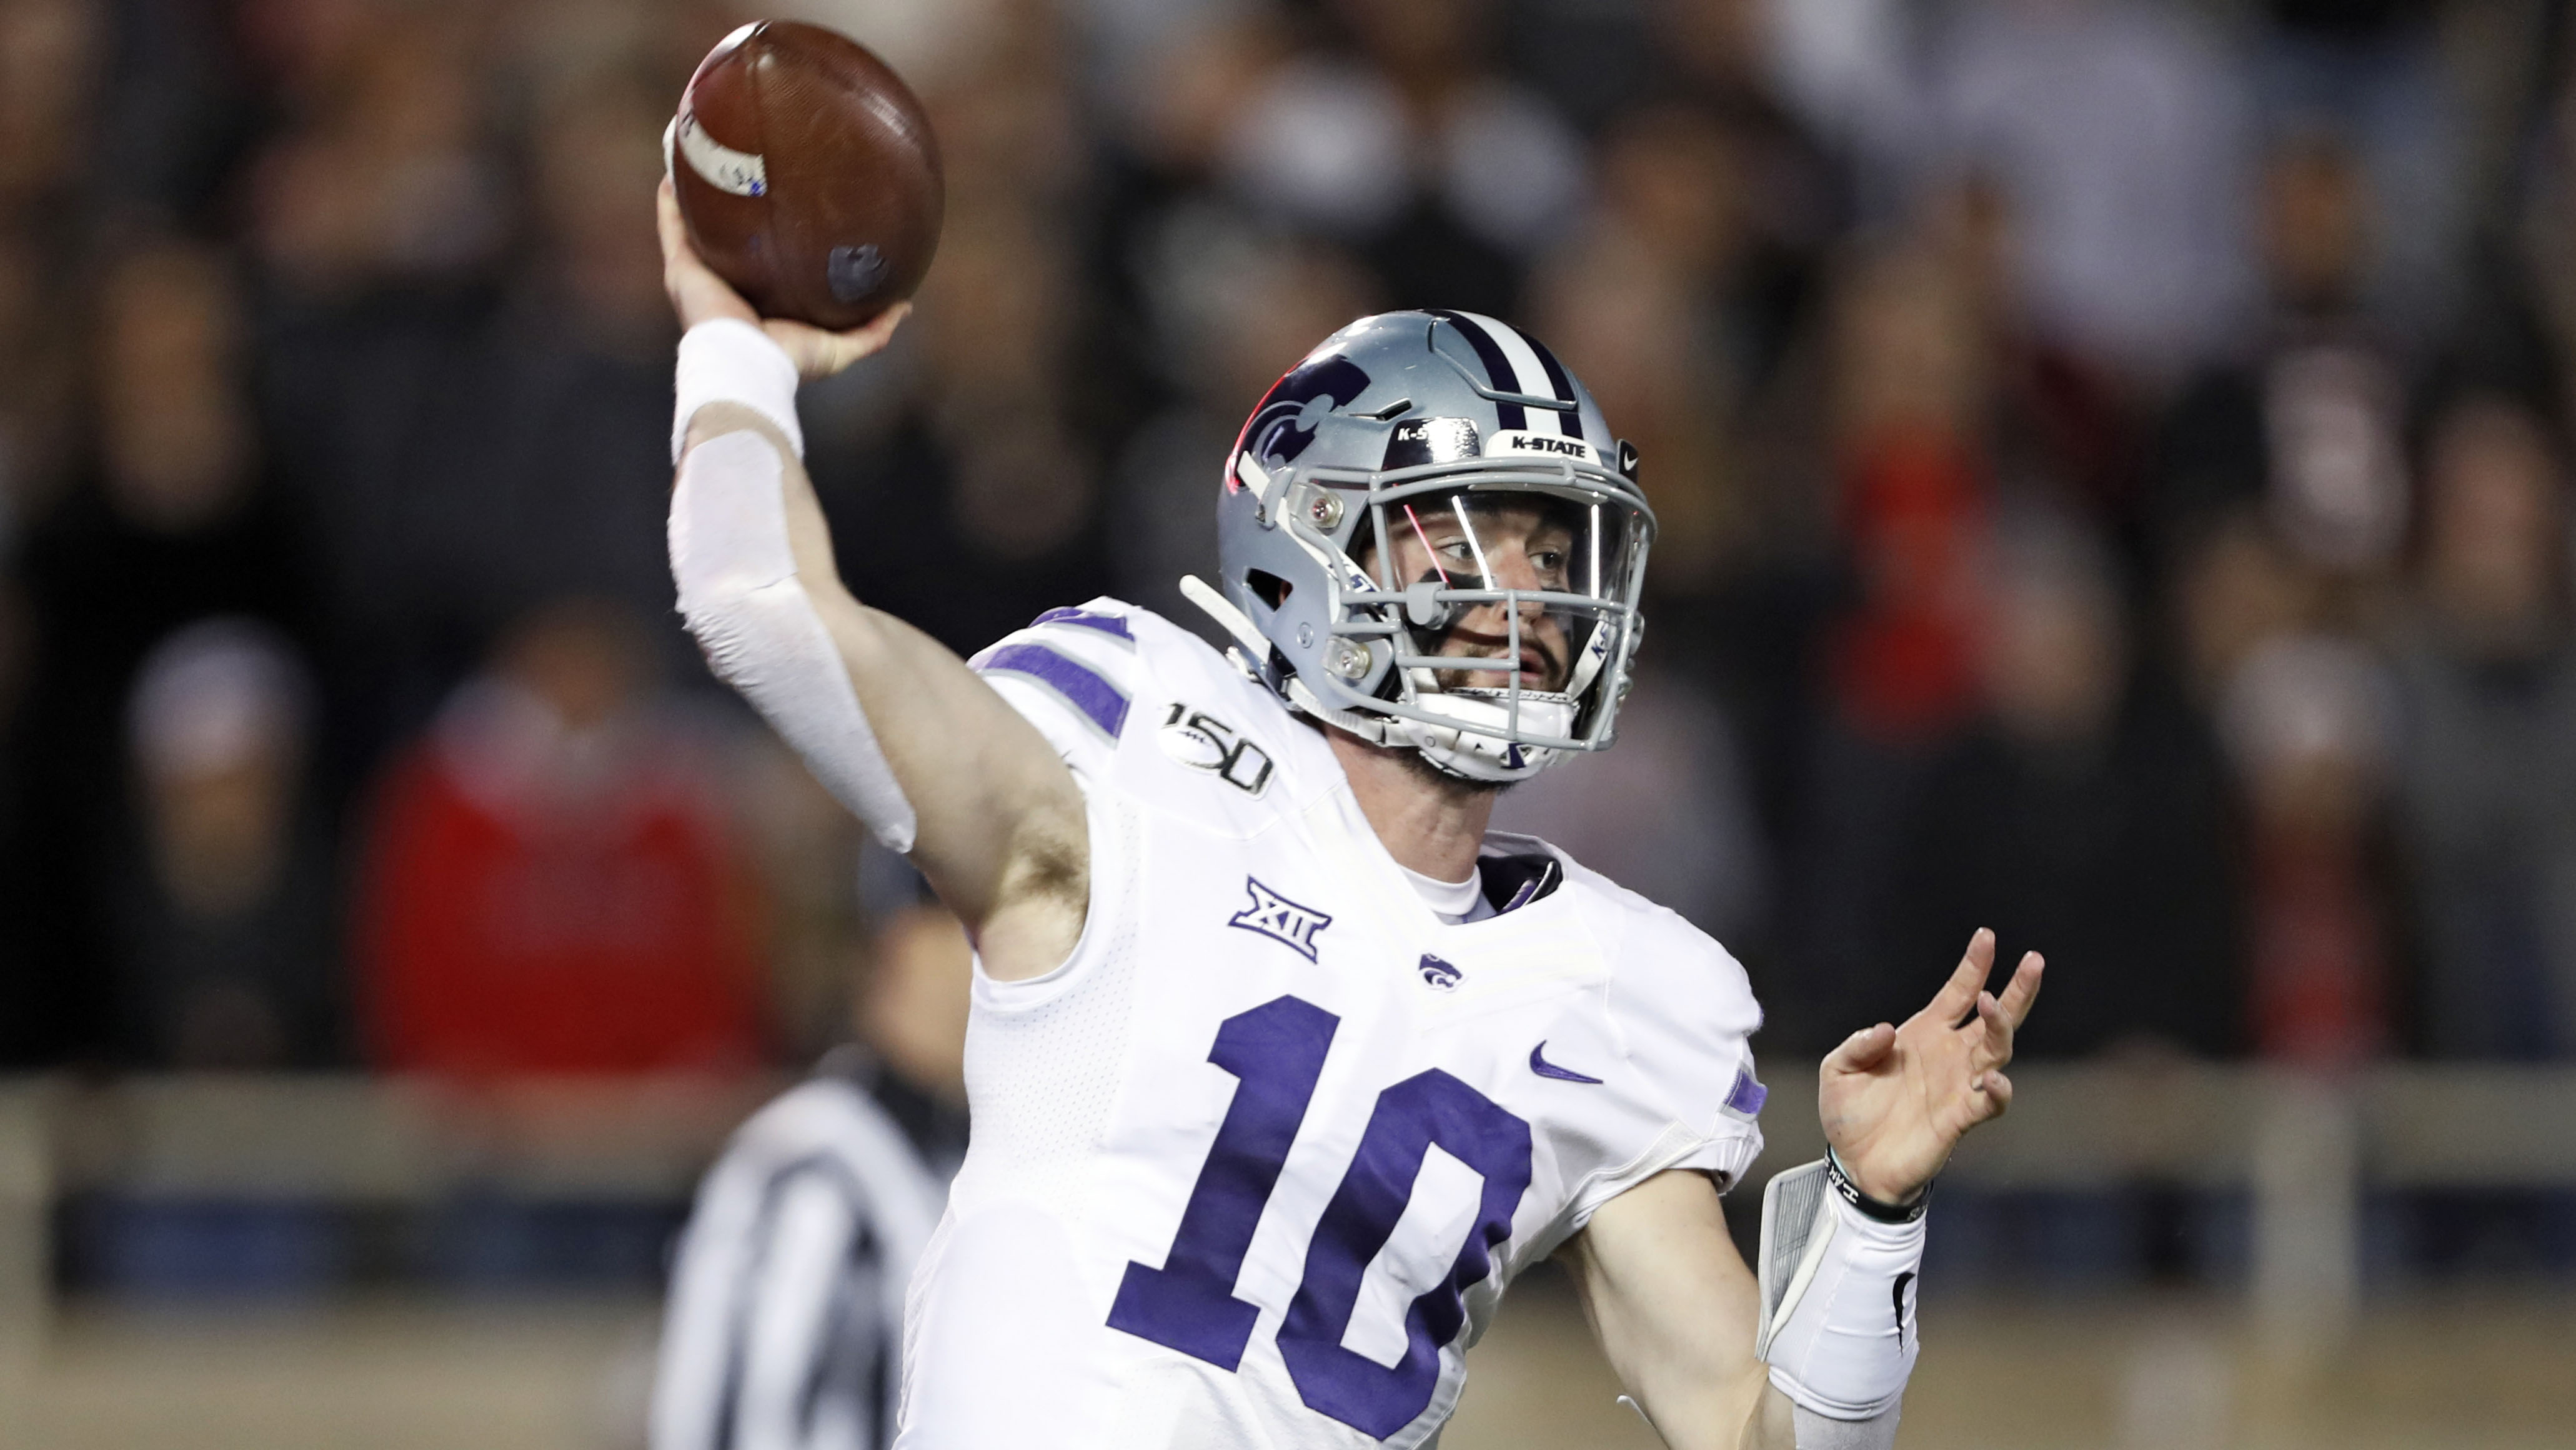 Thompson's big night leads Kansas State to 30-27 win over Texas Tech